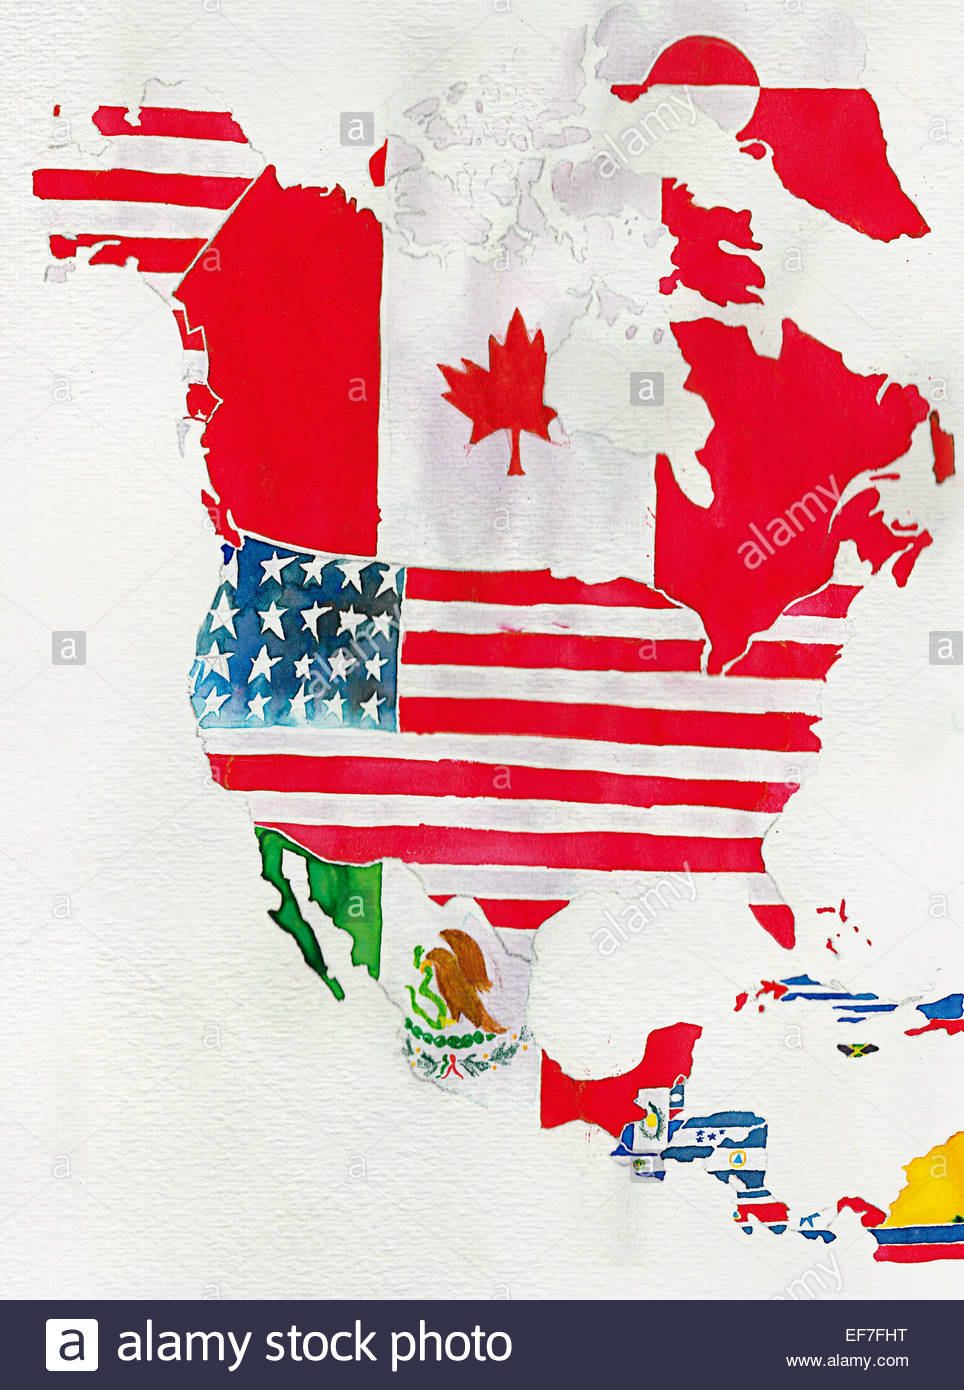 Watercolor flag map of North and Central America Stock Photo ...